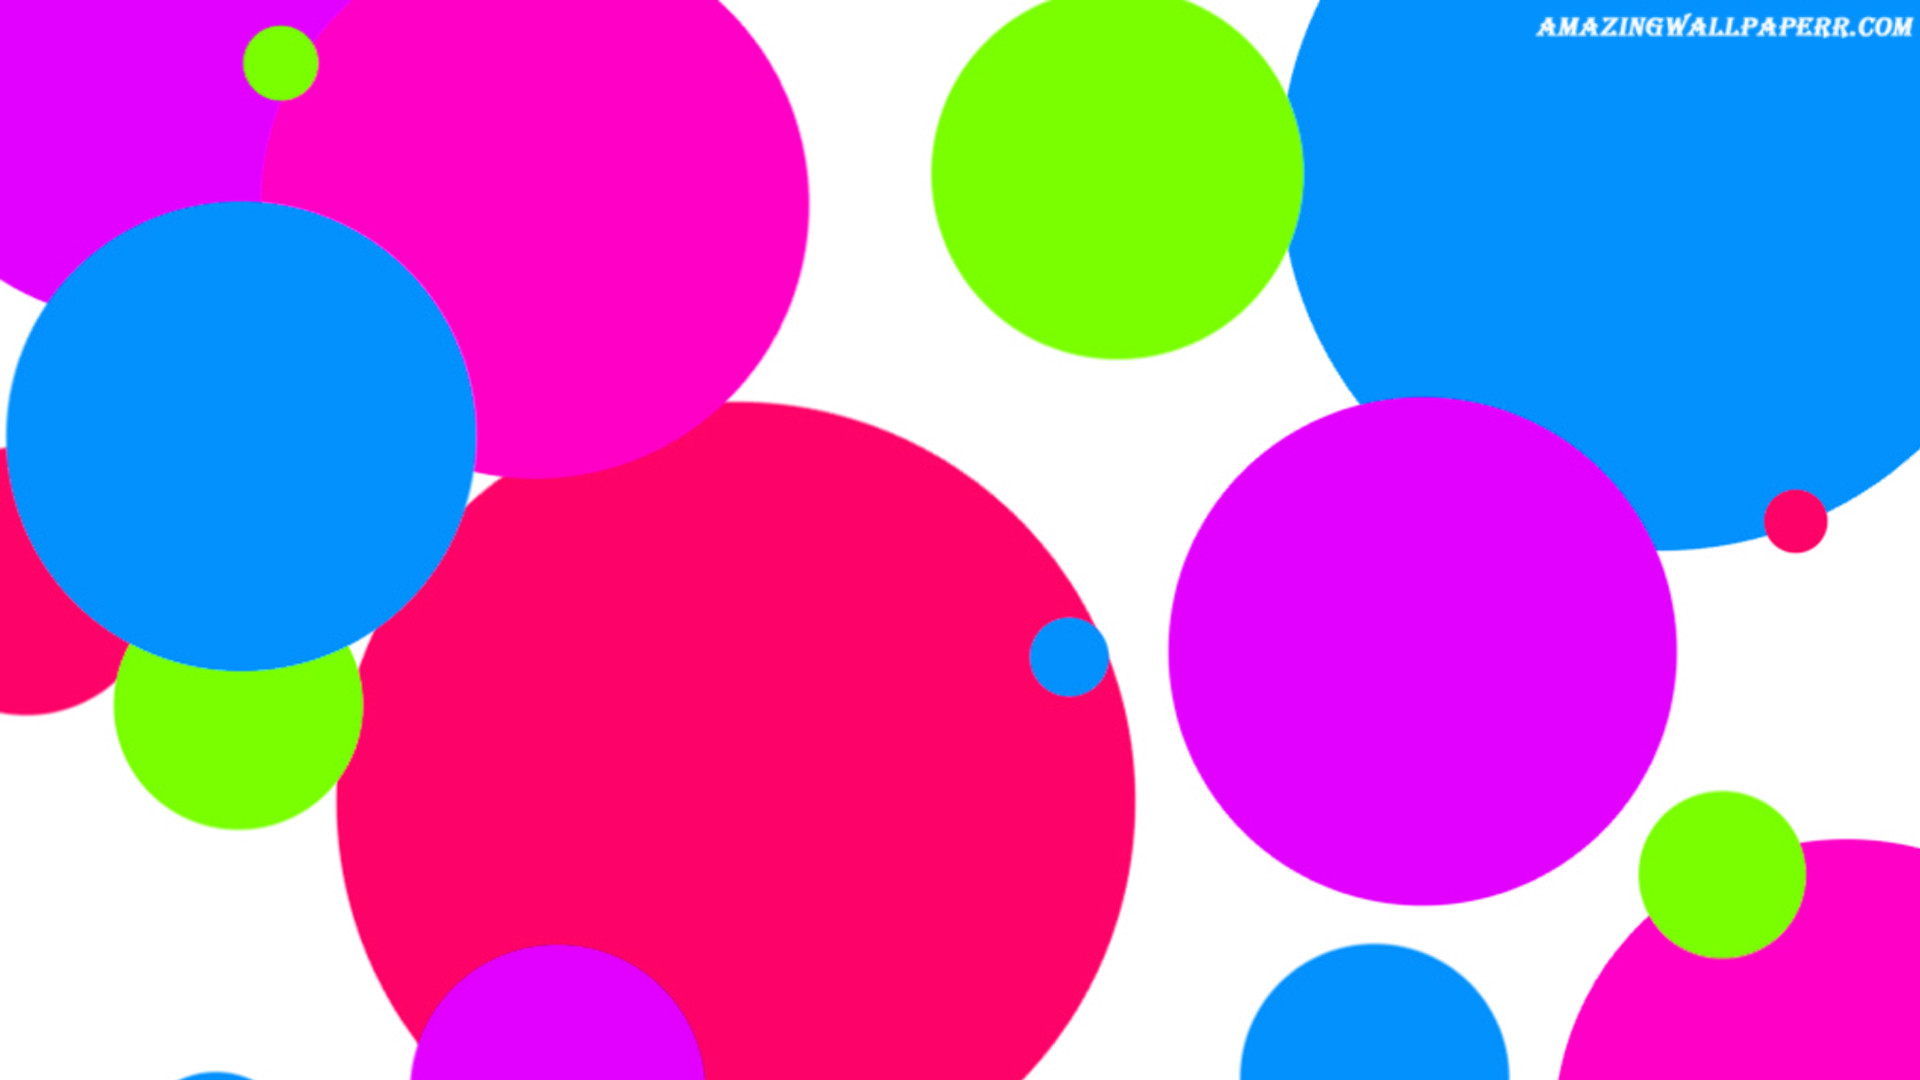 … Different Size Polka Dot Wallpaper by sheikhsherry44